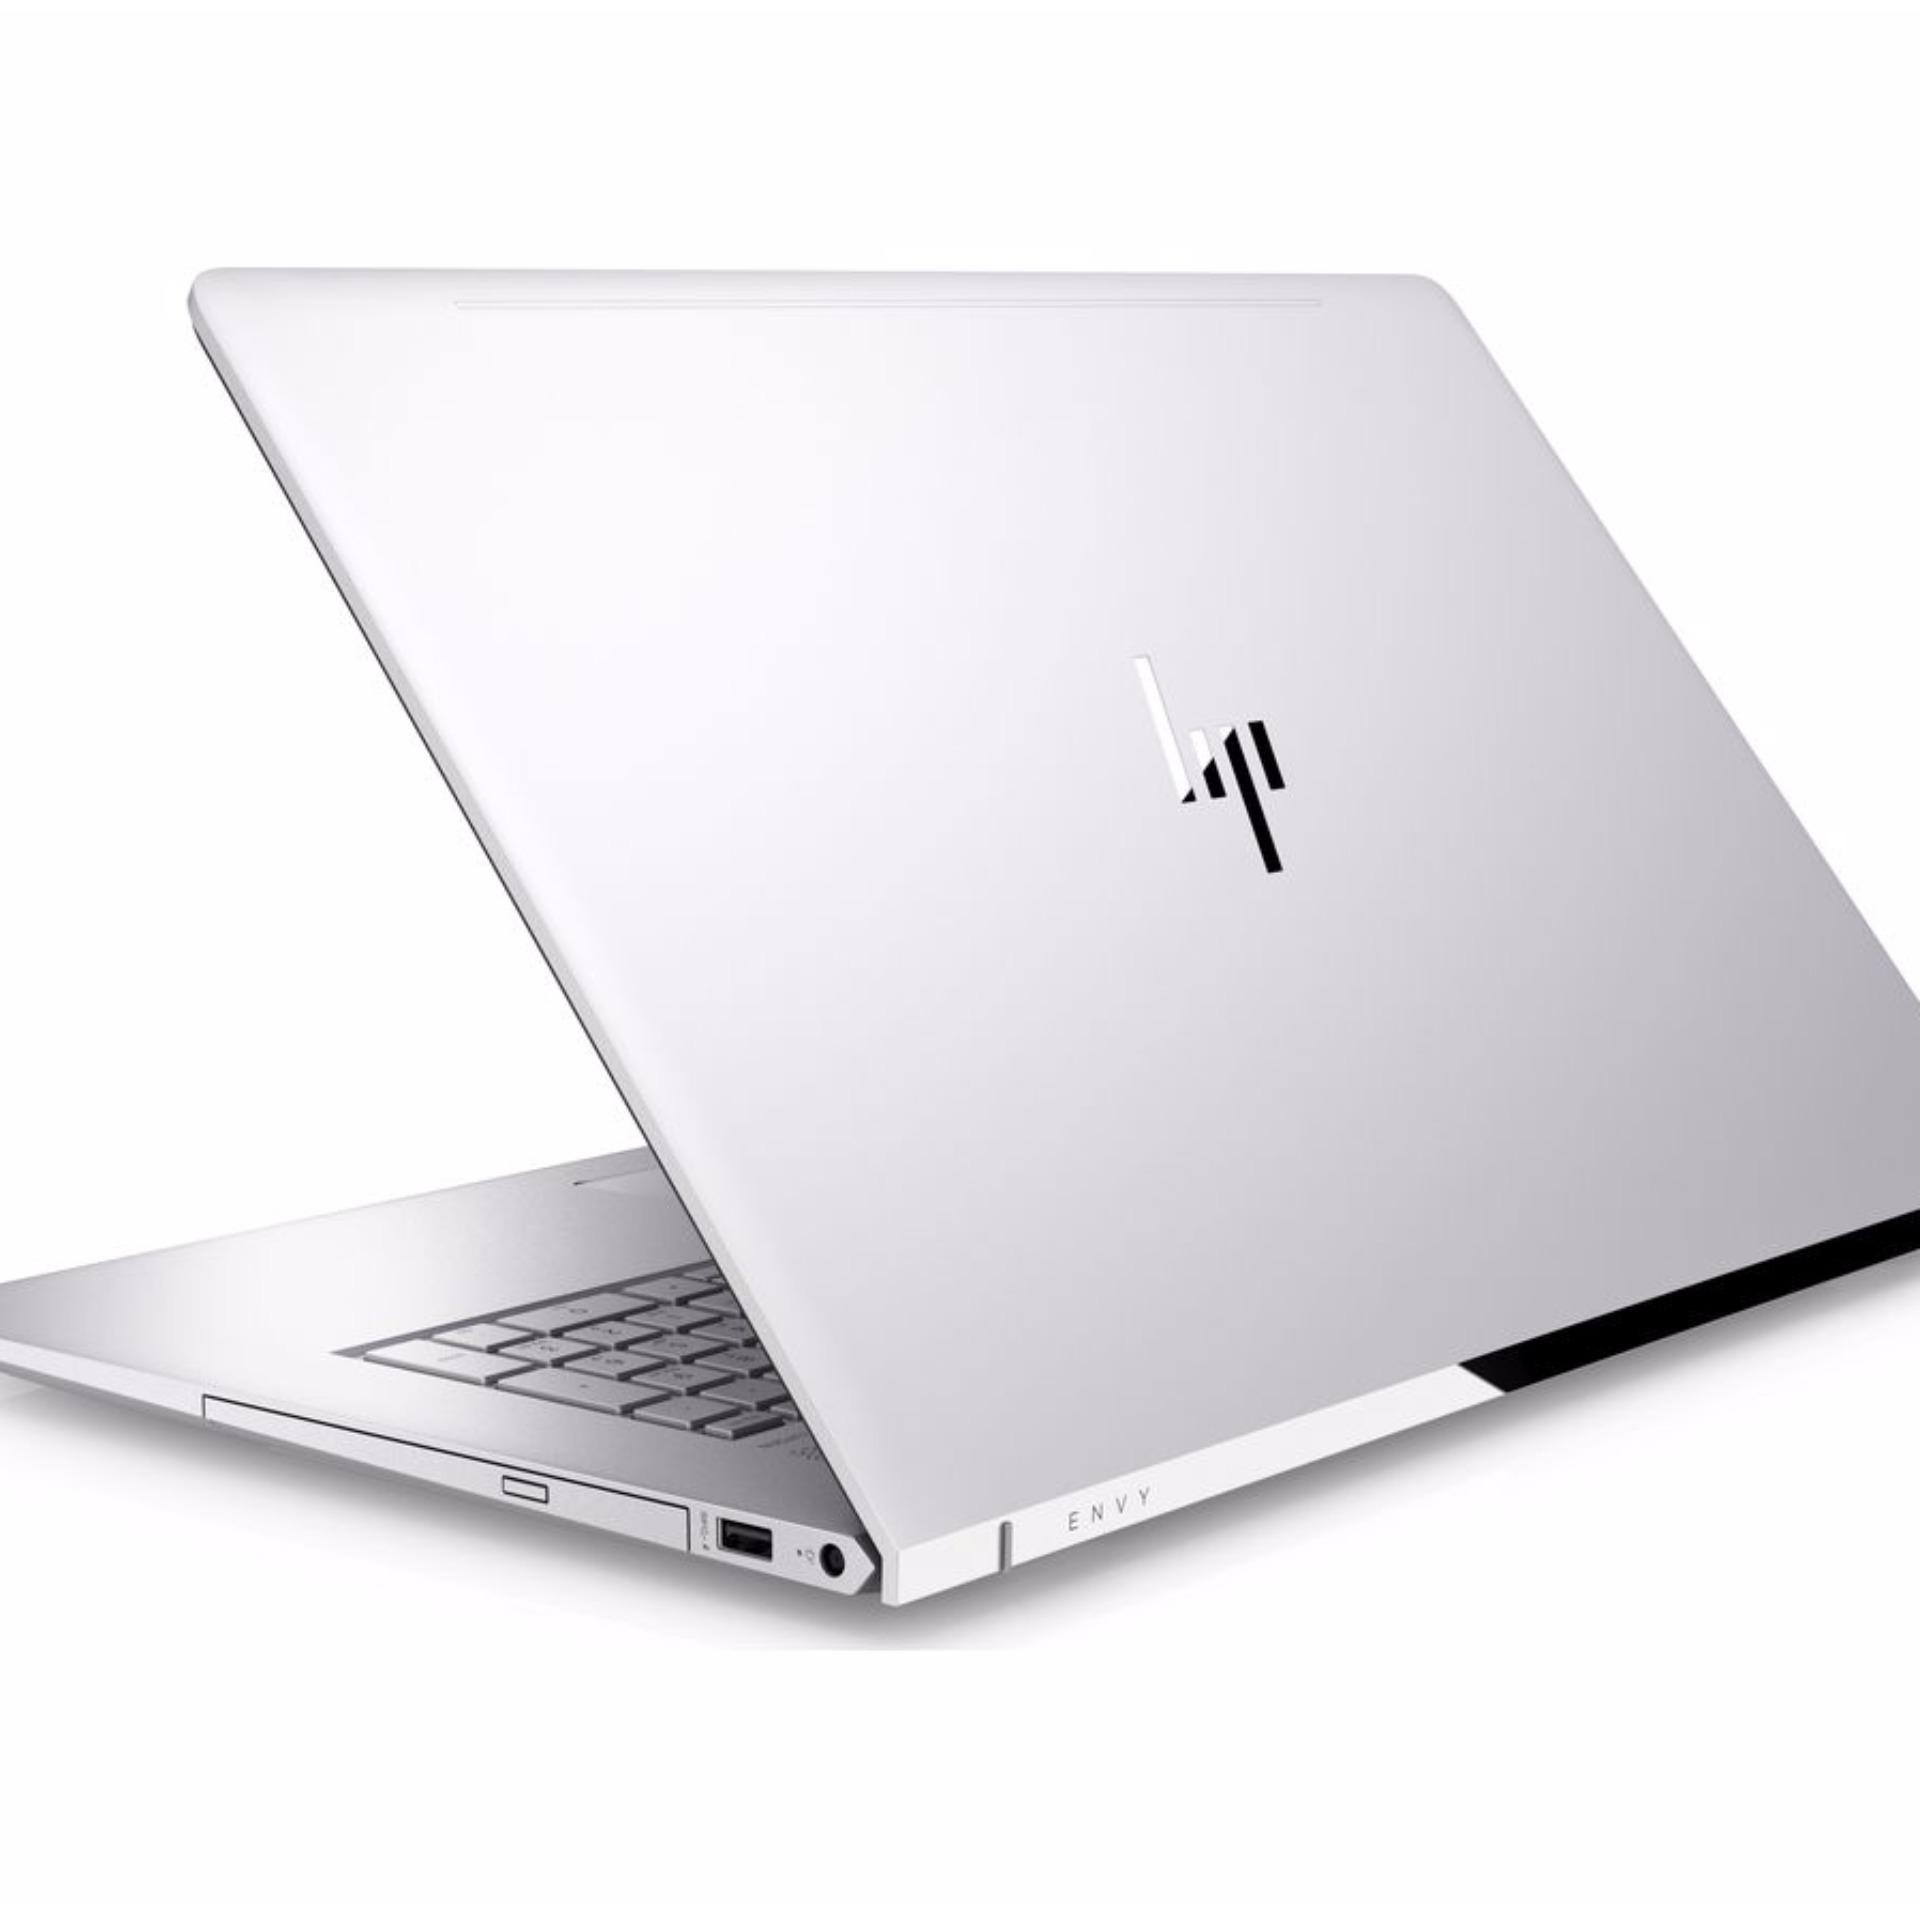 HP 13-AD115TU ENVY13 AD115TU i5-8250U Windows 10 Home 64 13.3